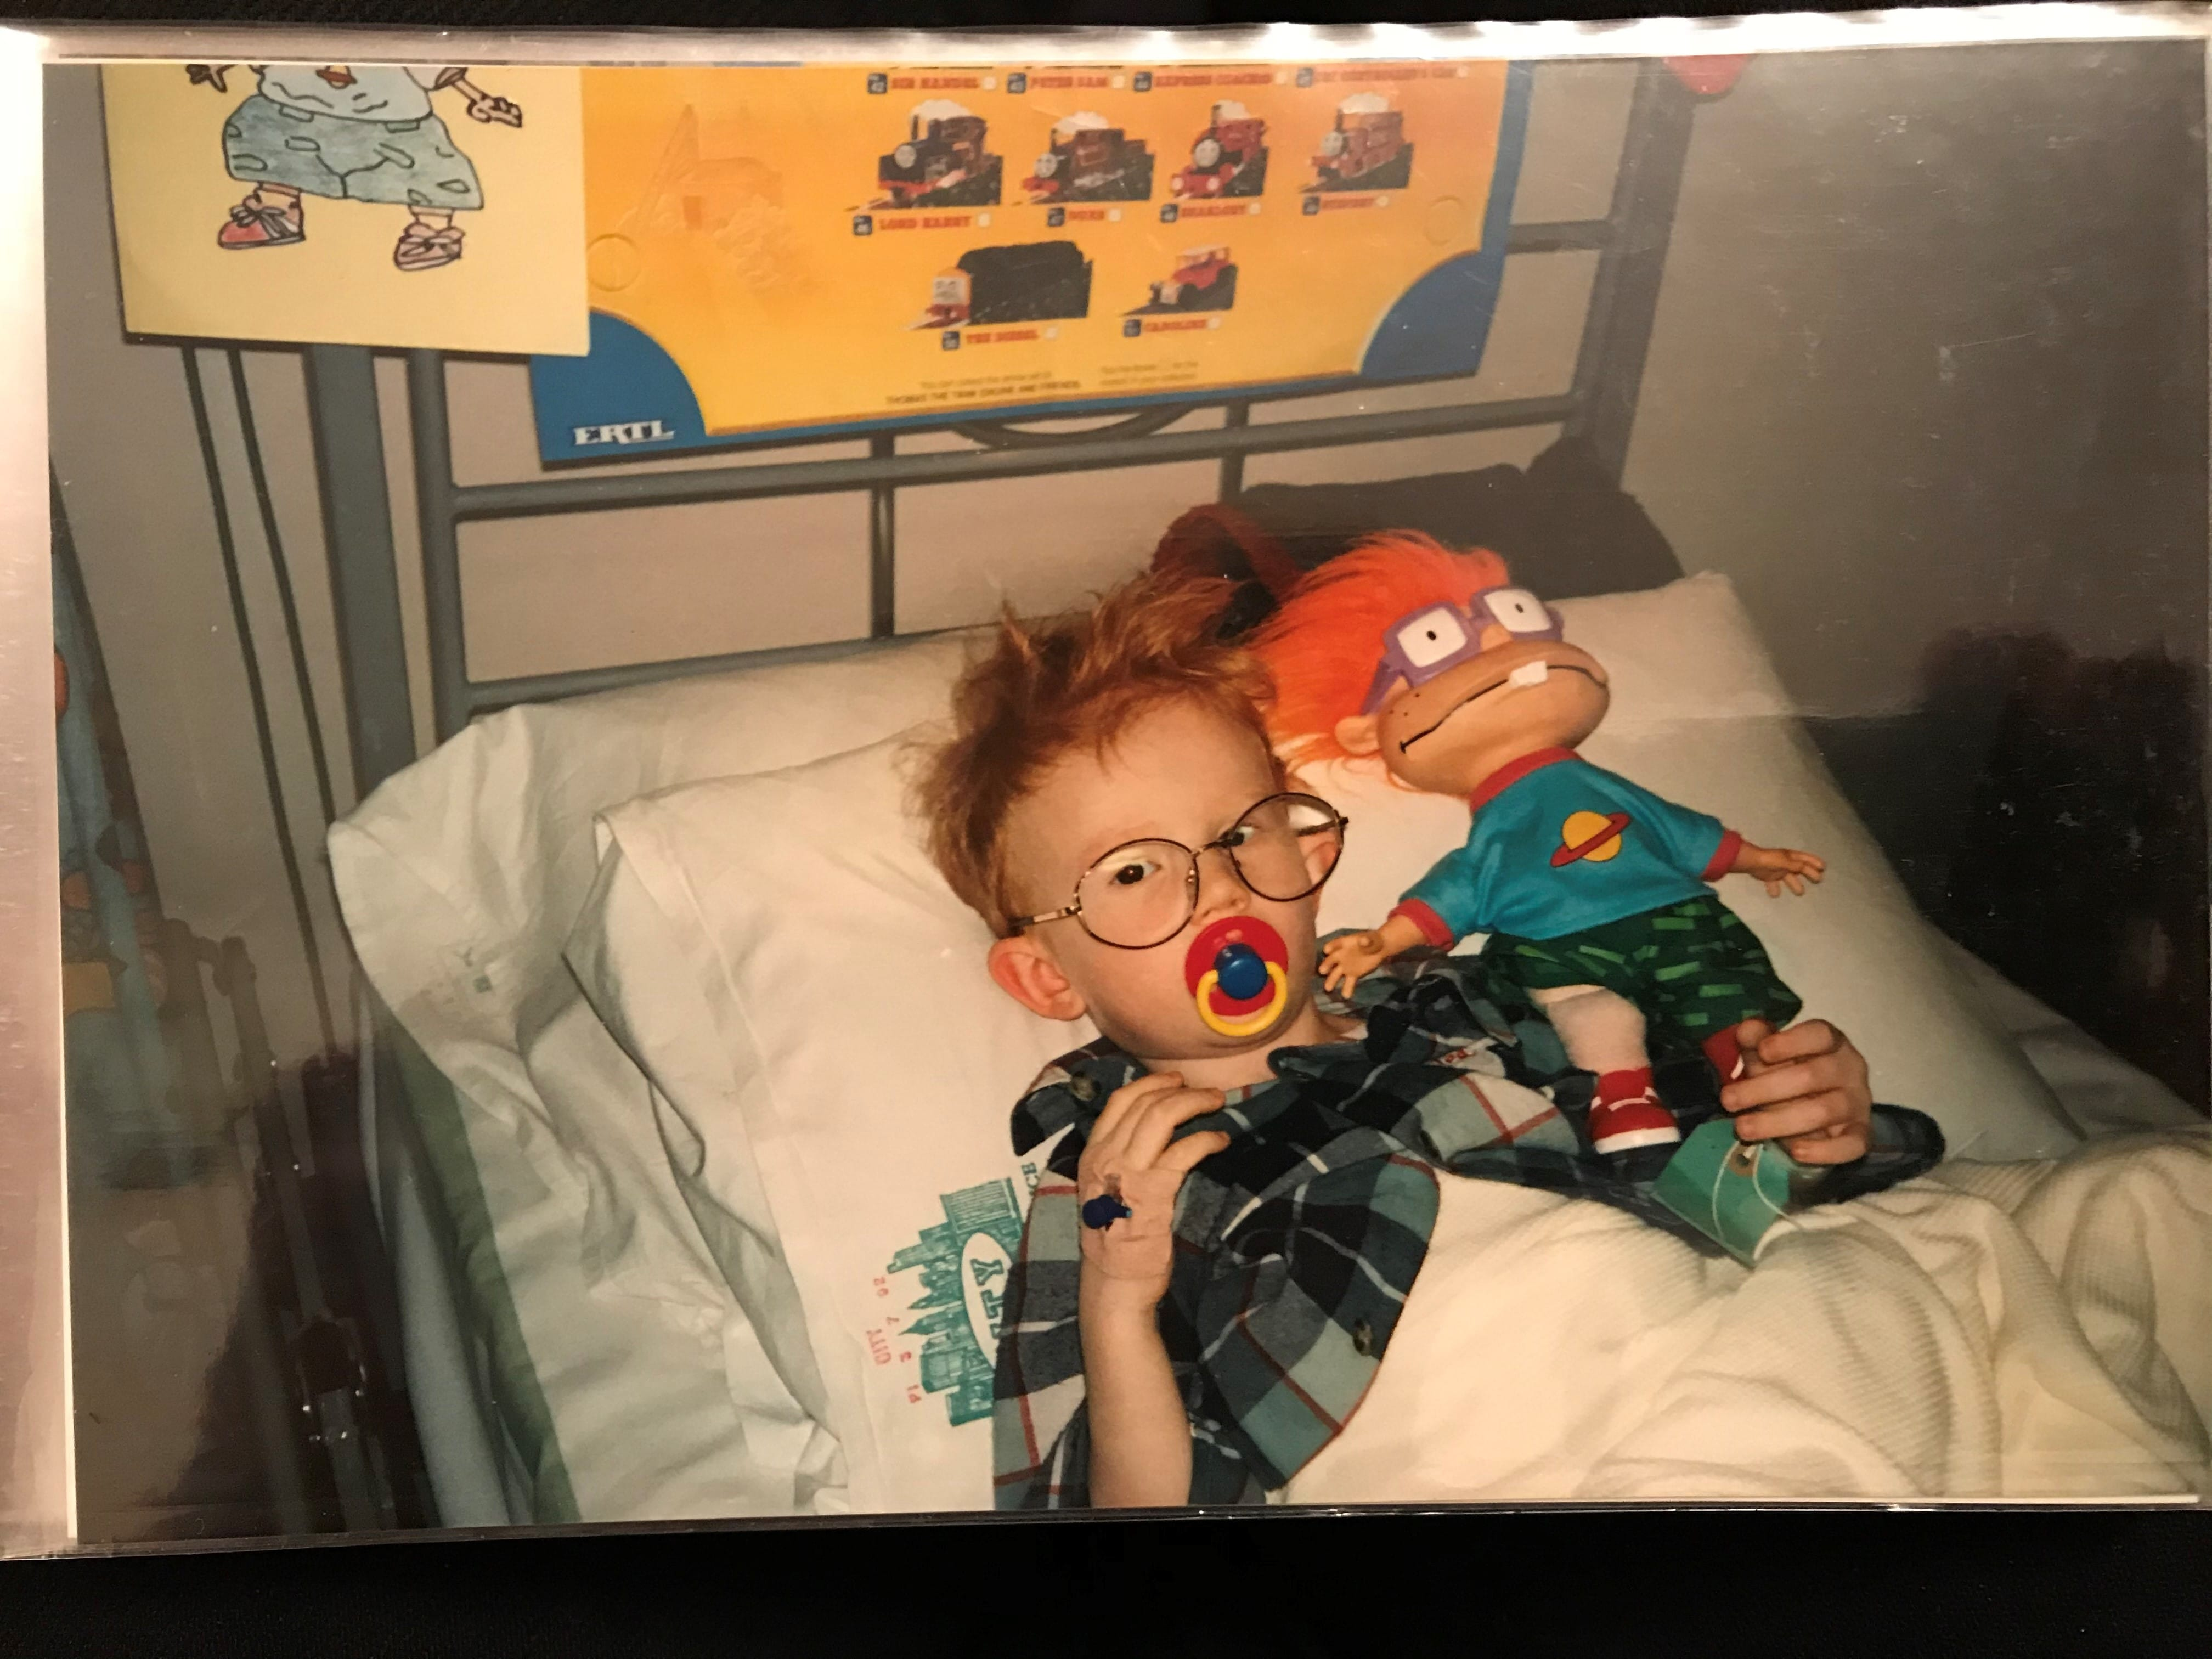 Jack Denby in hospital as a child